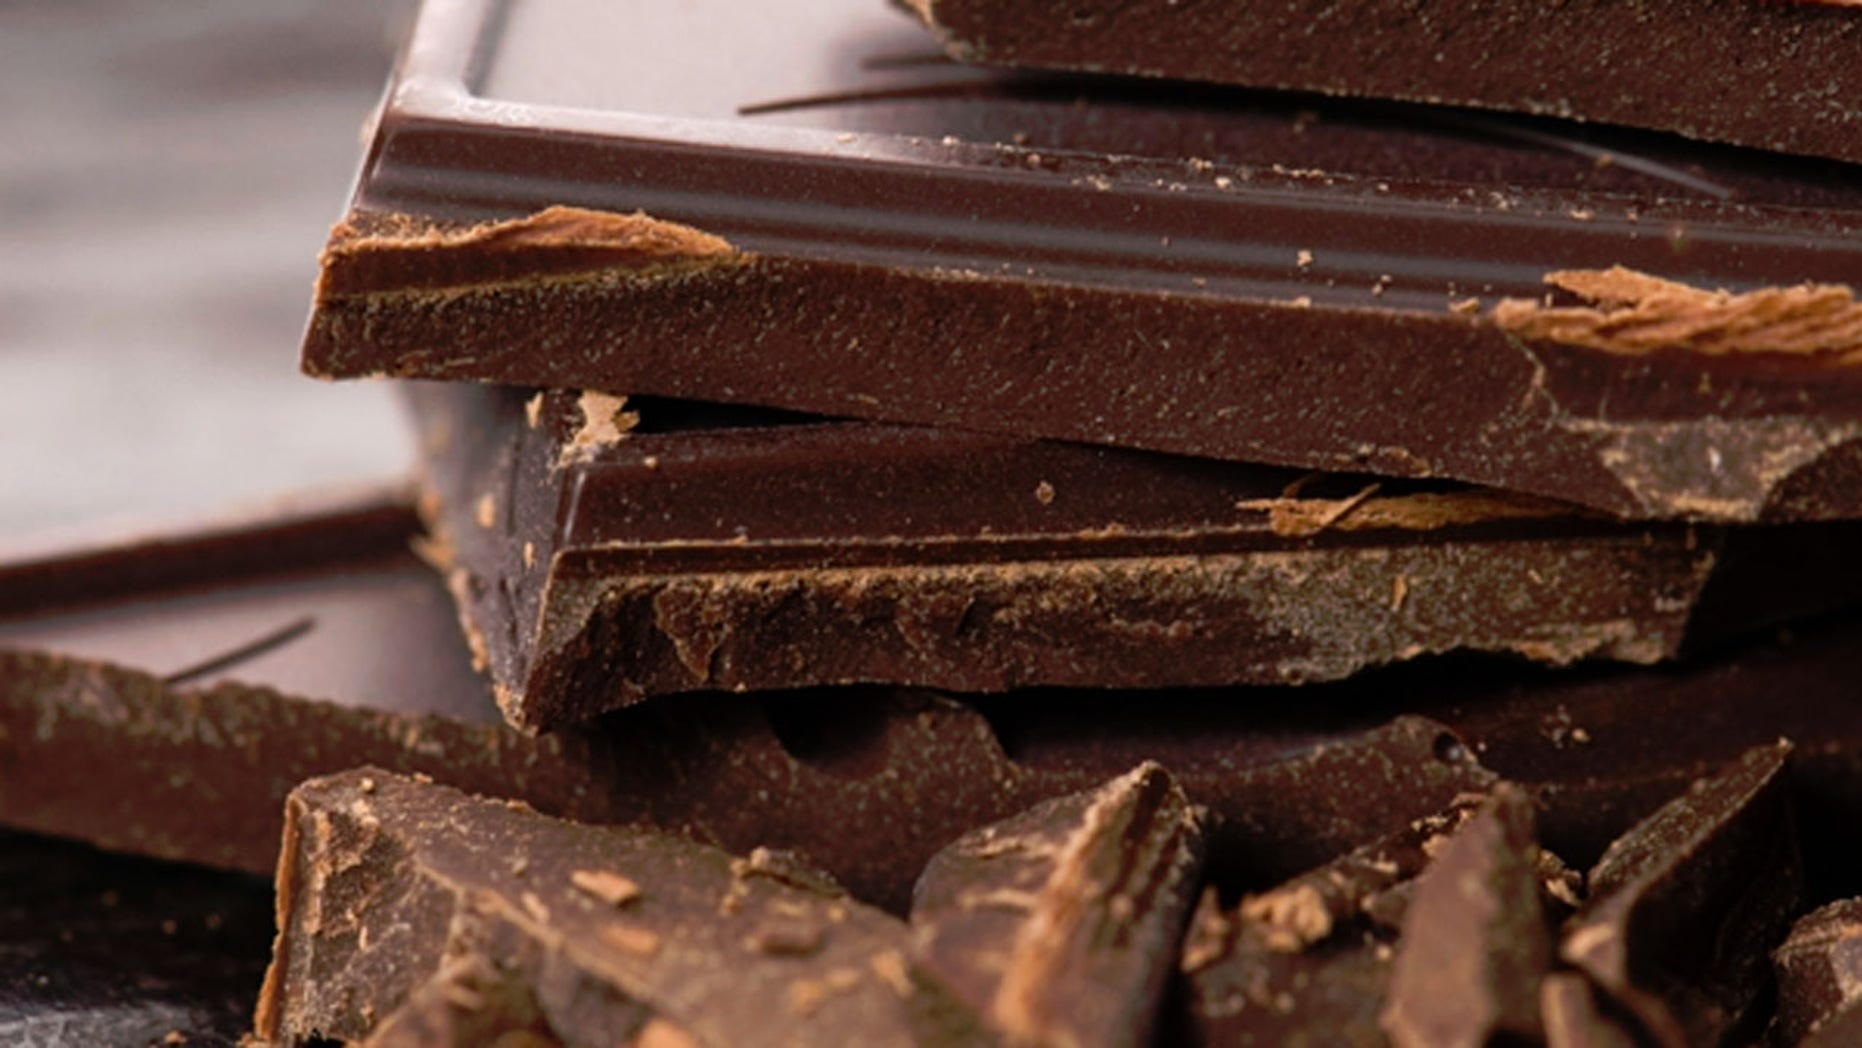 Chocolate makers are warning that chocolate will be increasingly rare unless something is done as demand for the sweet stuff soars.